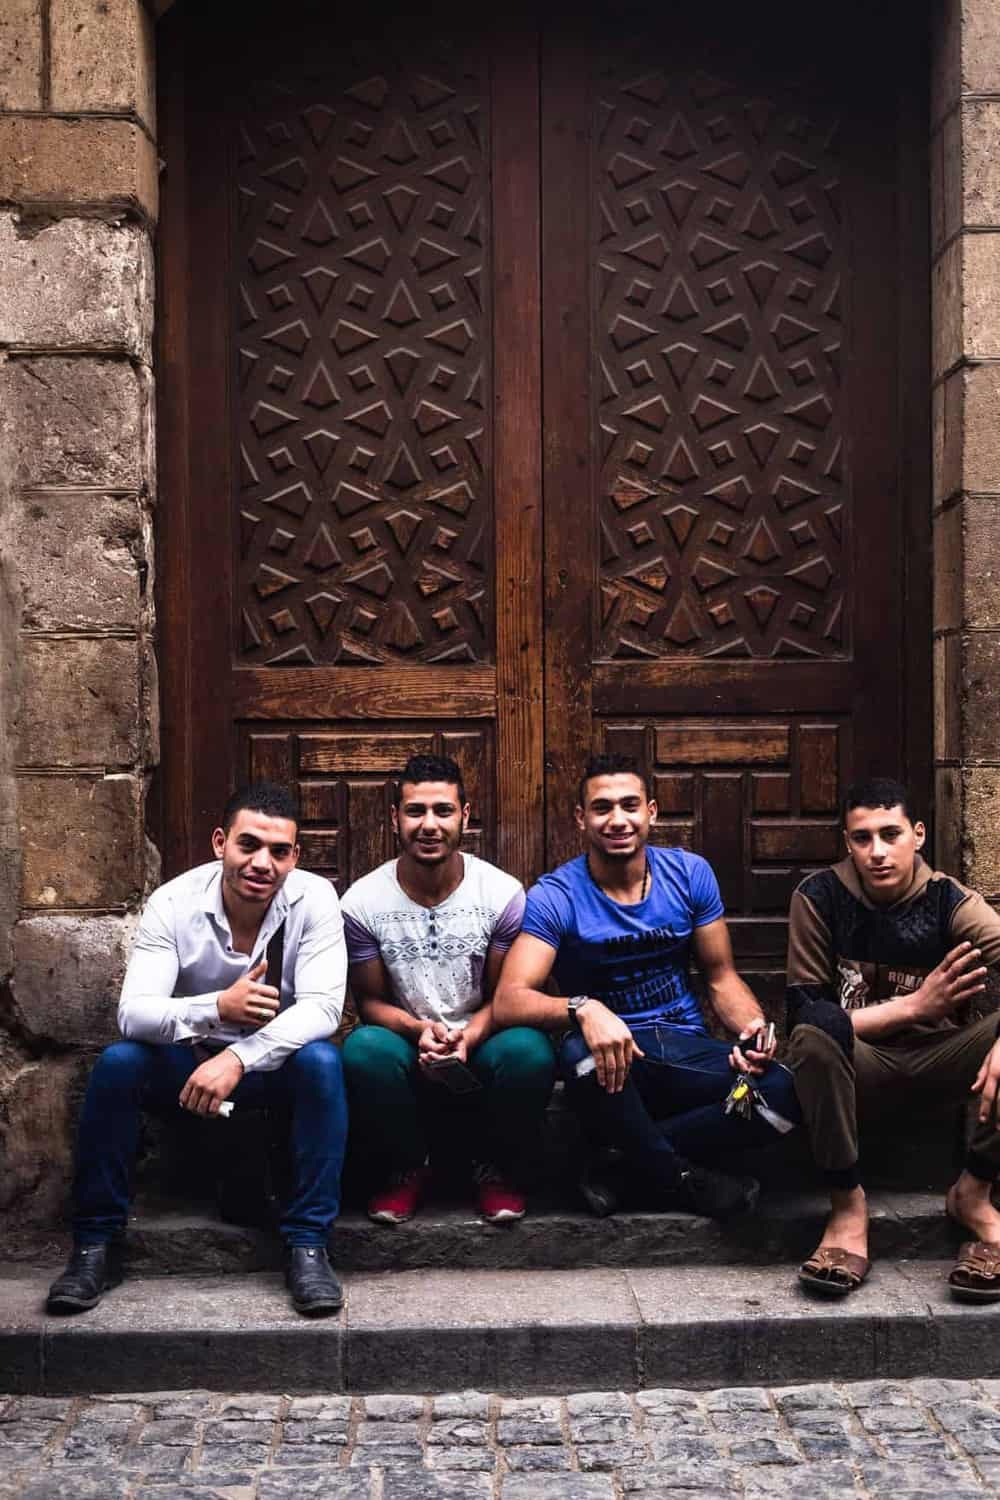 portrait shot of 4 friends looking happy and posing in Old Cairo.